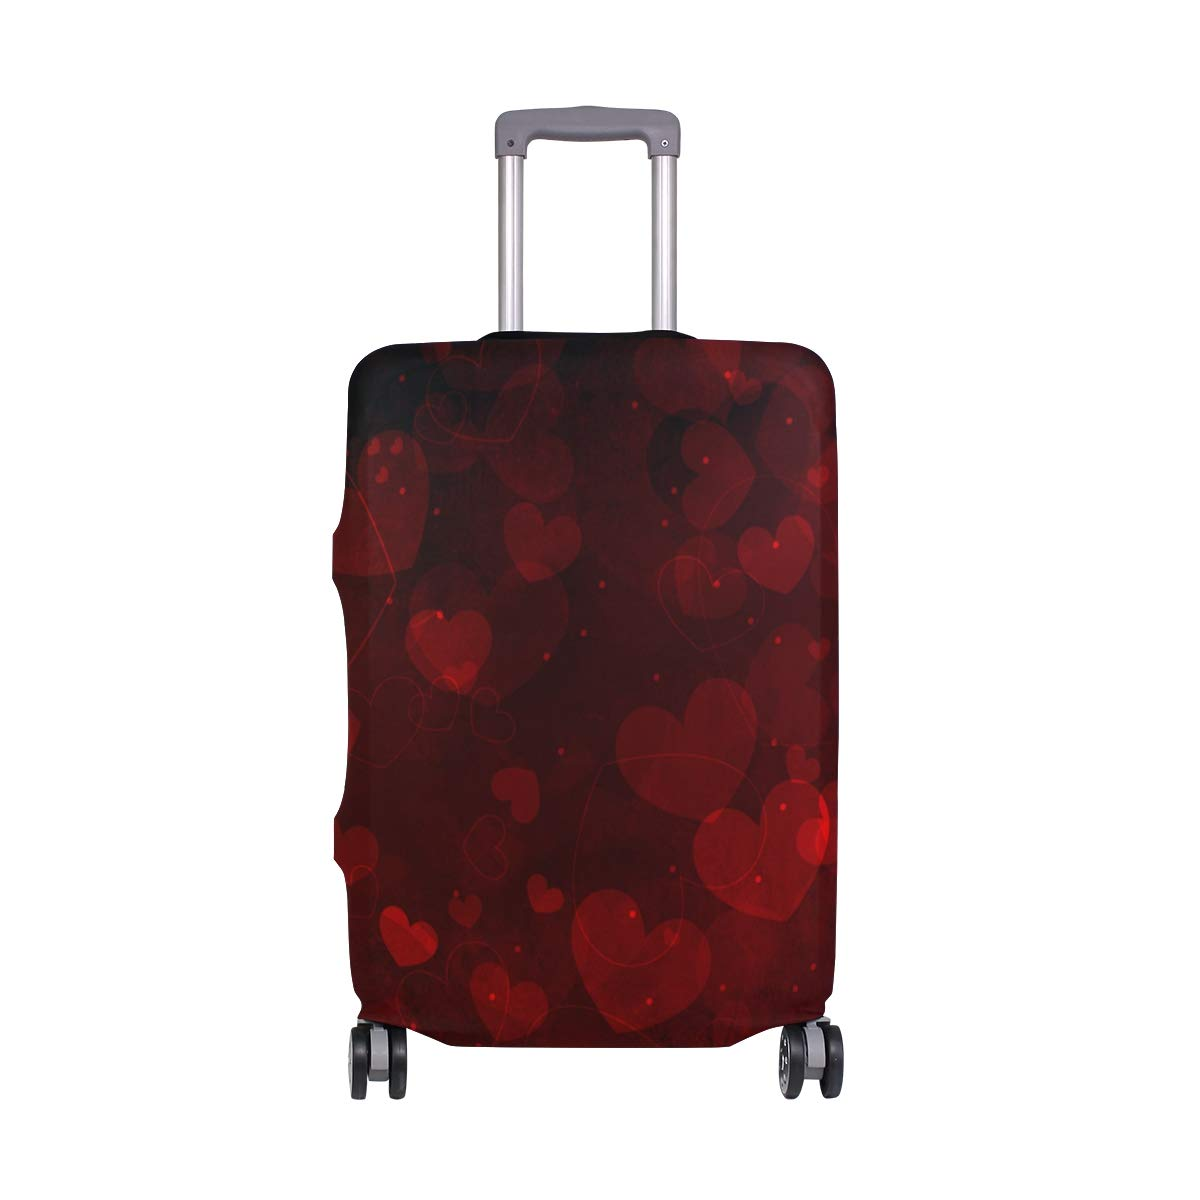 My Daily Hearts Valentine's Day Wedding Luggage Cover Fits 24-26 Inch Suitcase Spandex Travel Protector M